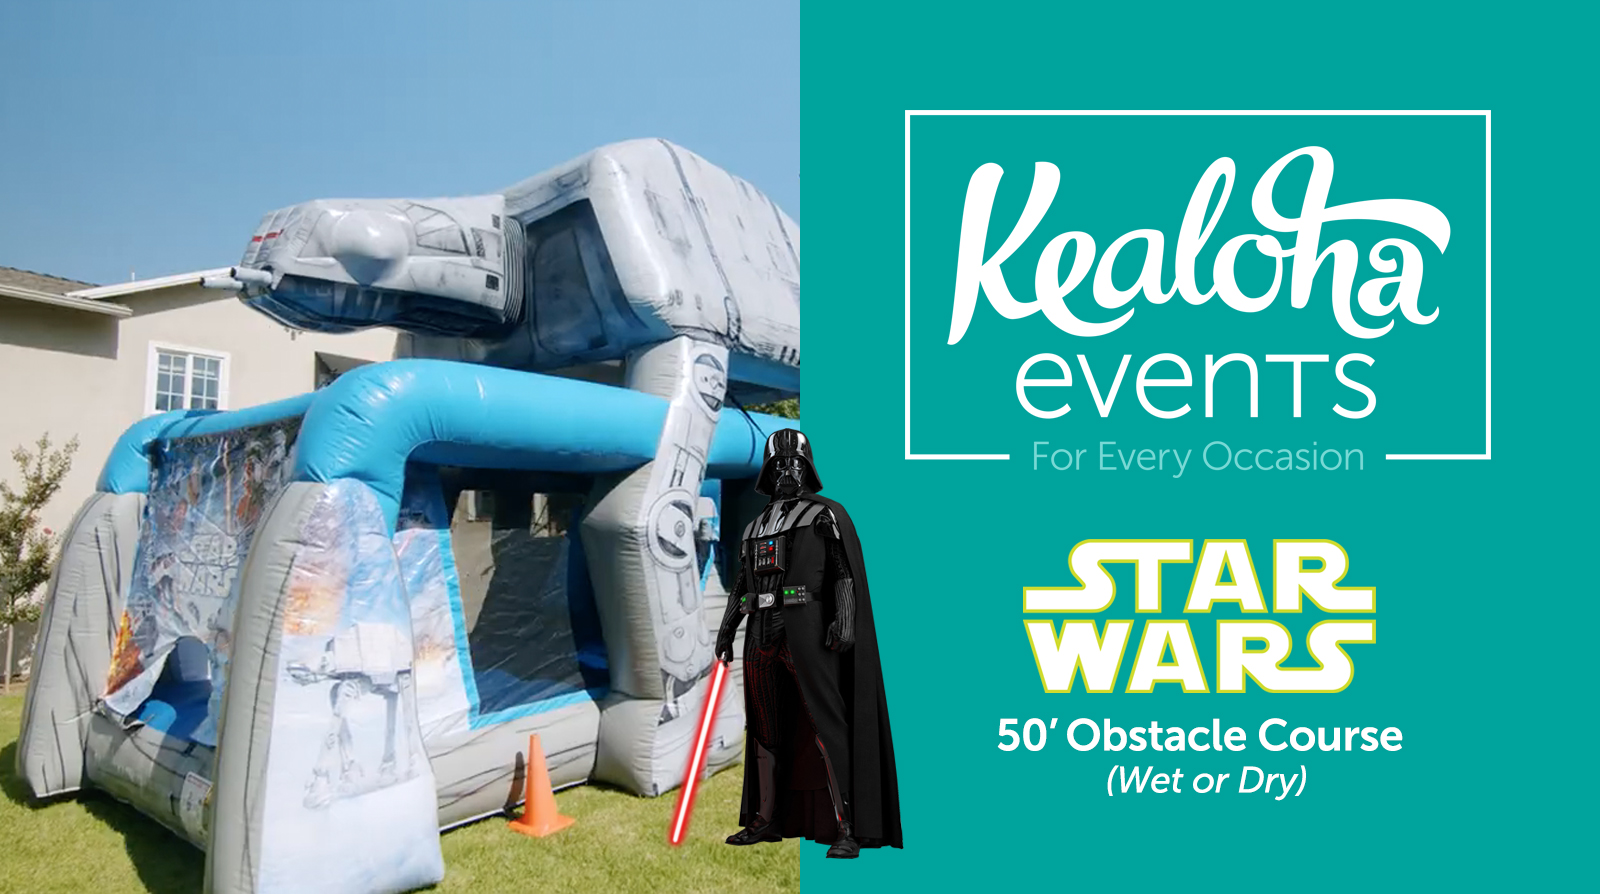 Star Wars Obstacle Course Video